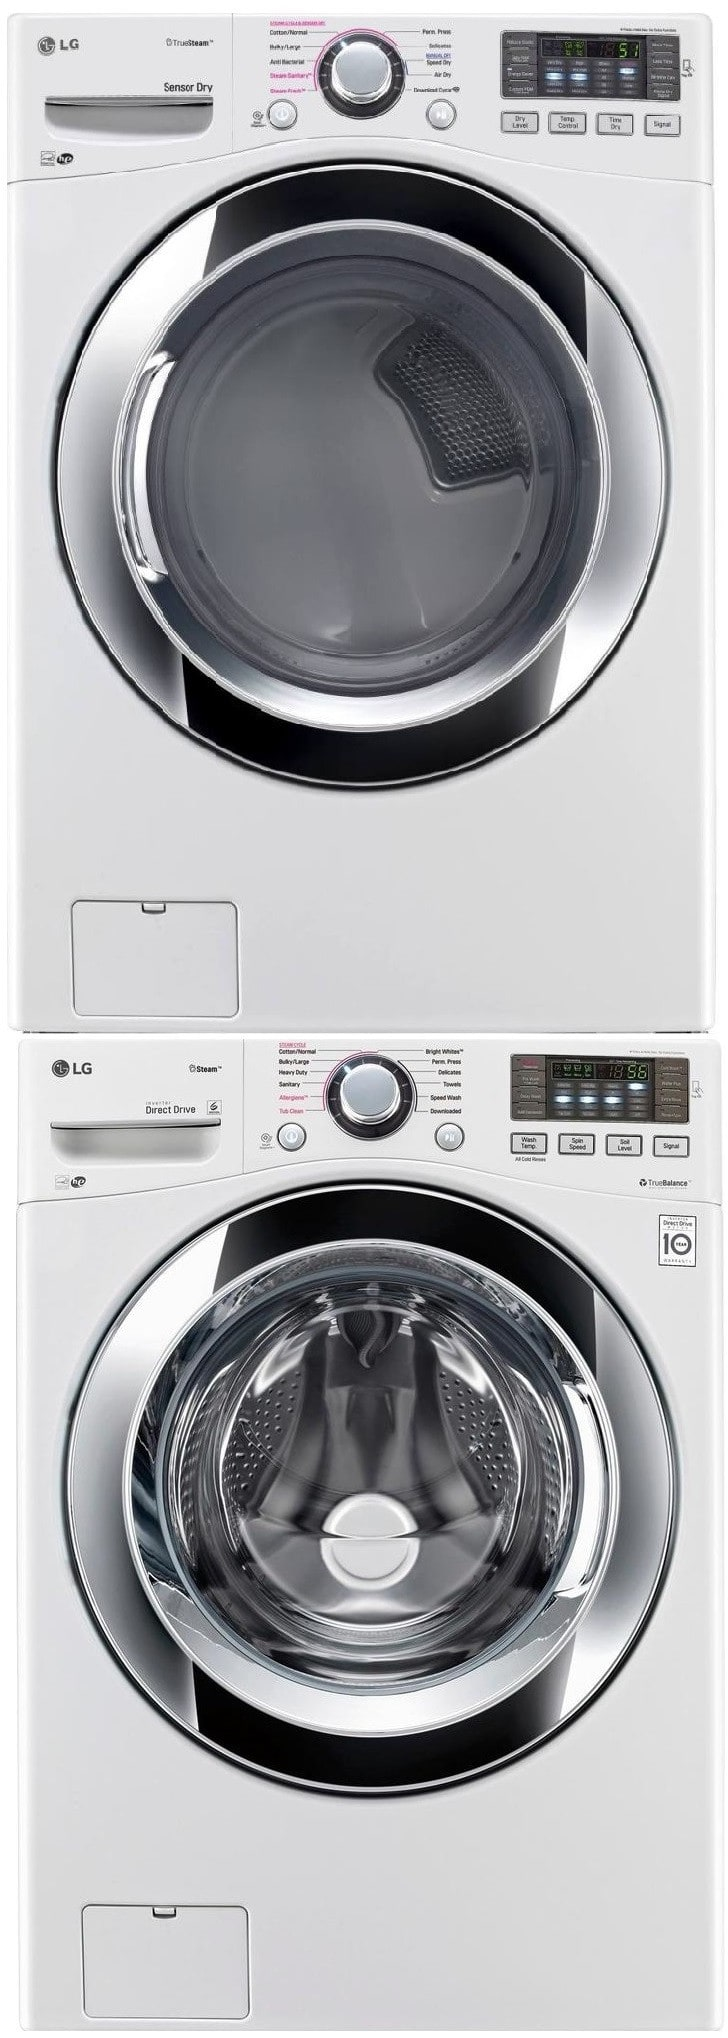 Lg Lgwadrgw105 Stacked Washer Amp Dryer Set With Front Load